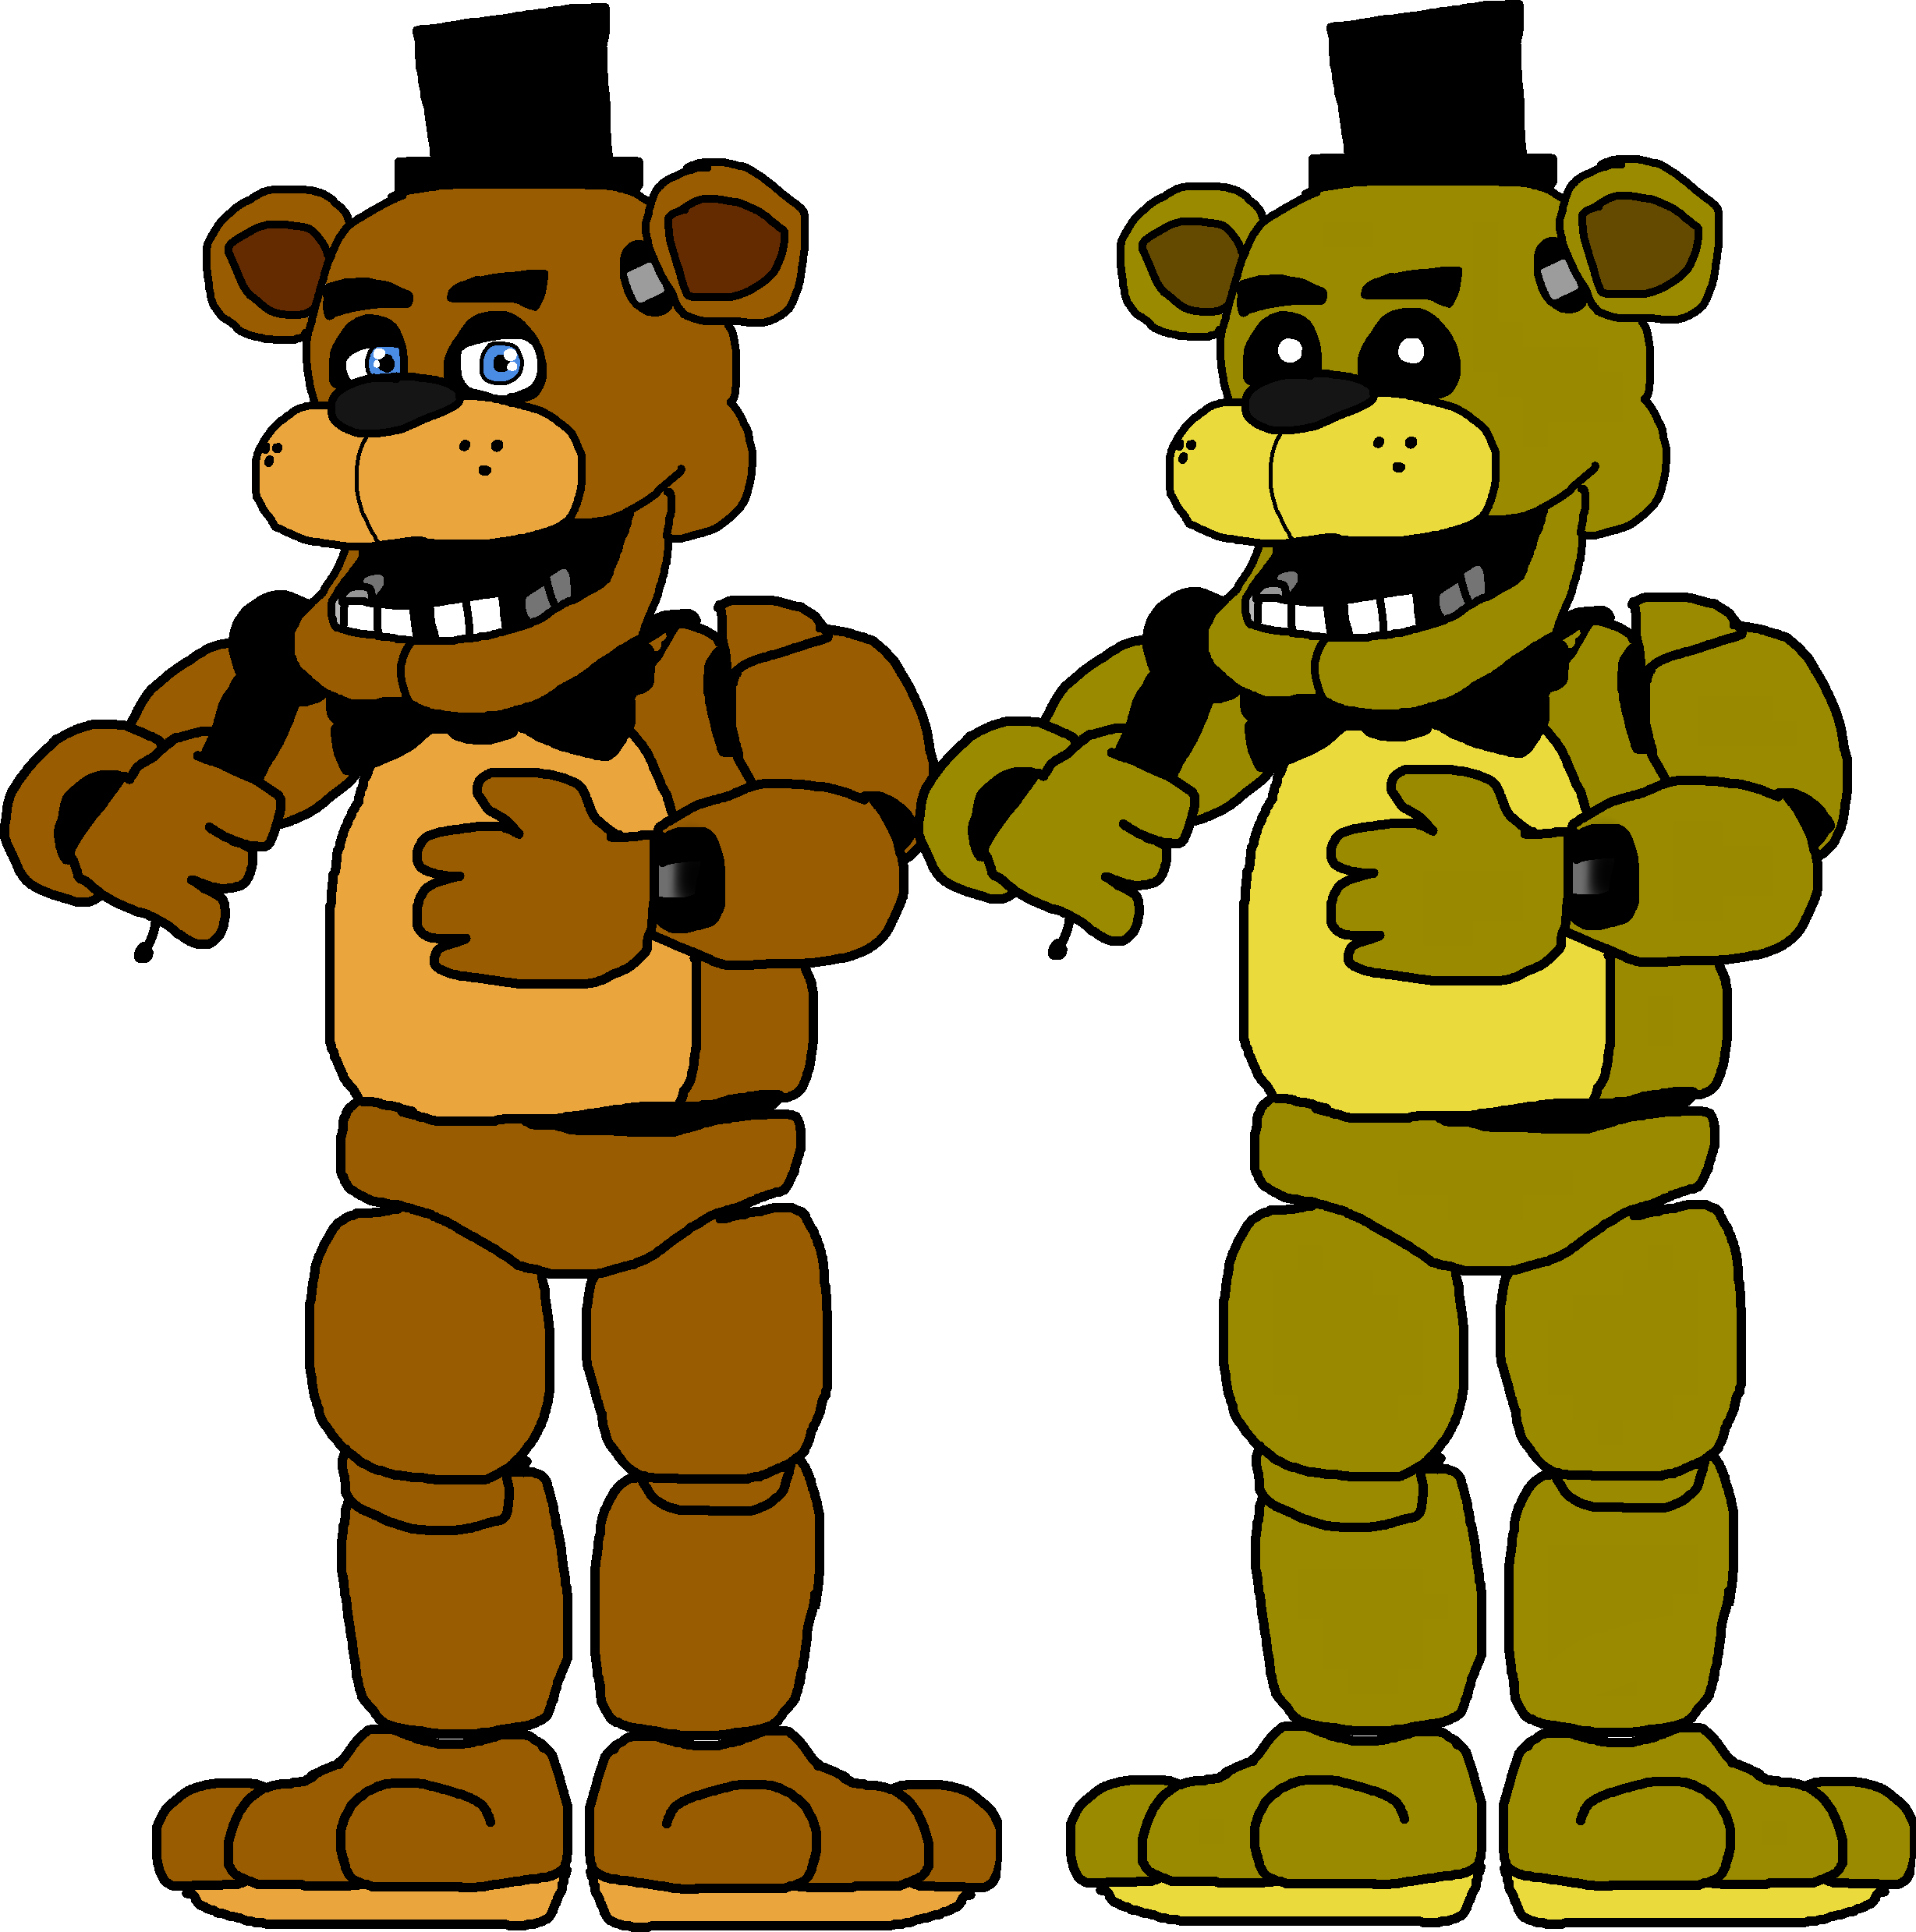 png library stock I made these full bodied drawings of both Golden Freddy and Freddy